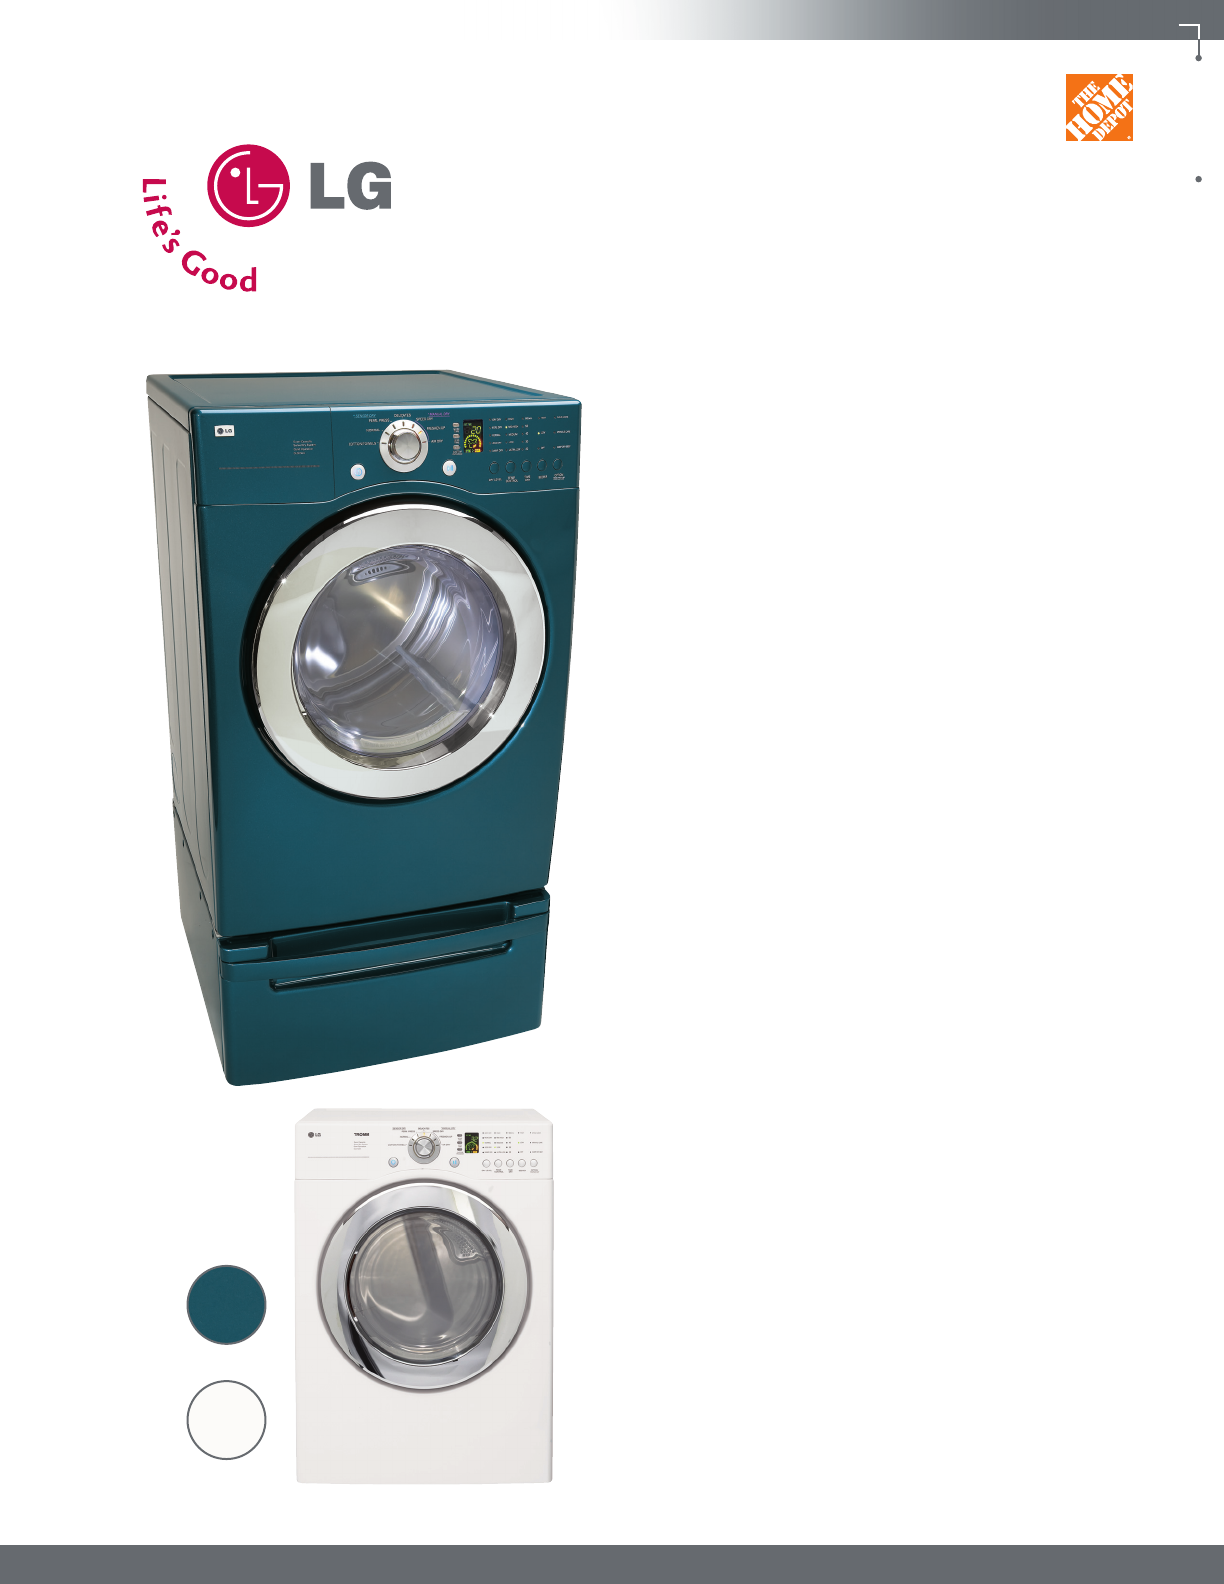 lg electronics clothes dryer d3744 user guide manualsonline com rh laundry manualsonline com LG WM1812CW Washing Machine LG Tromm Washer Manual